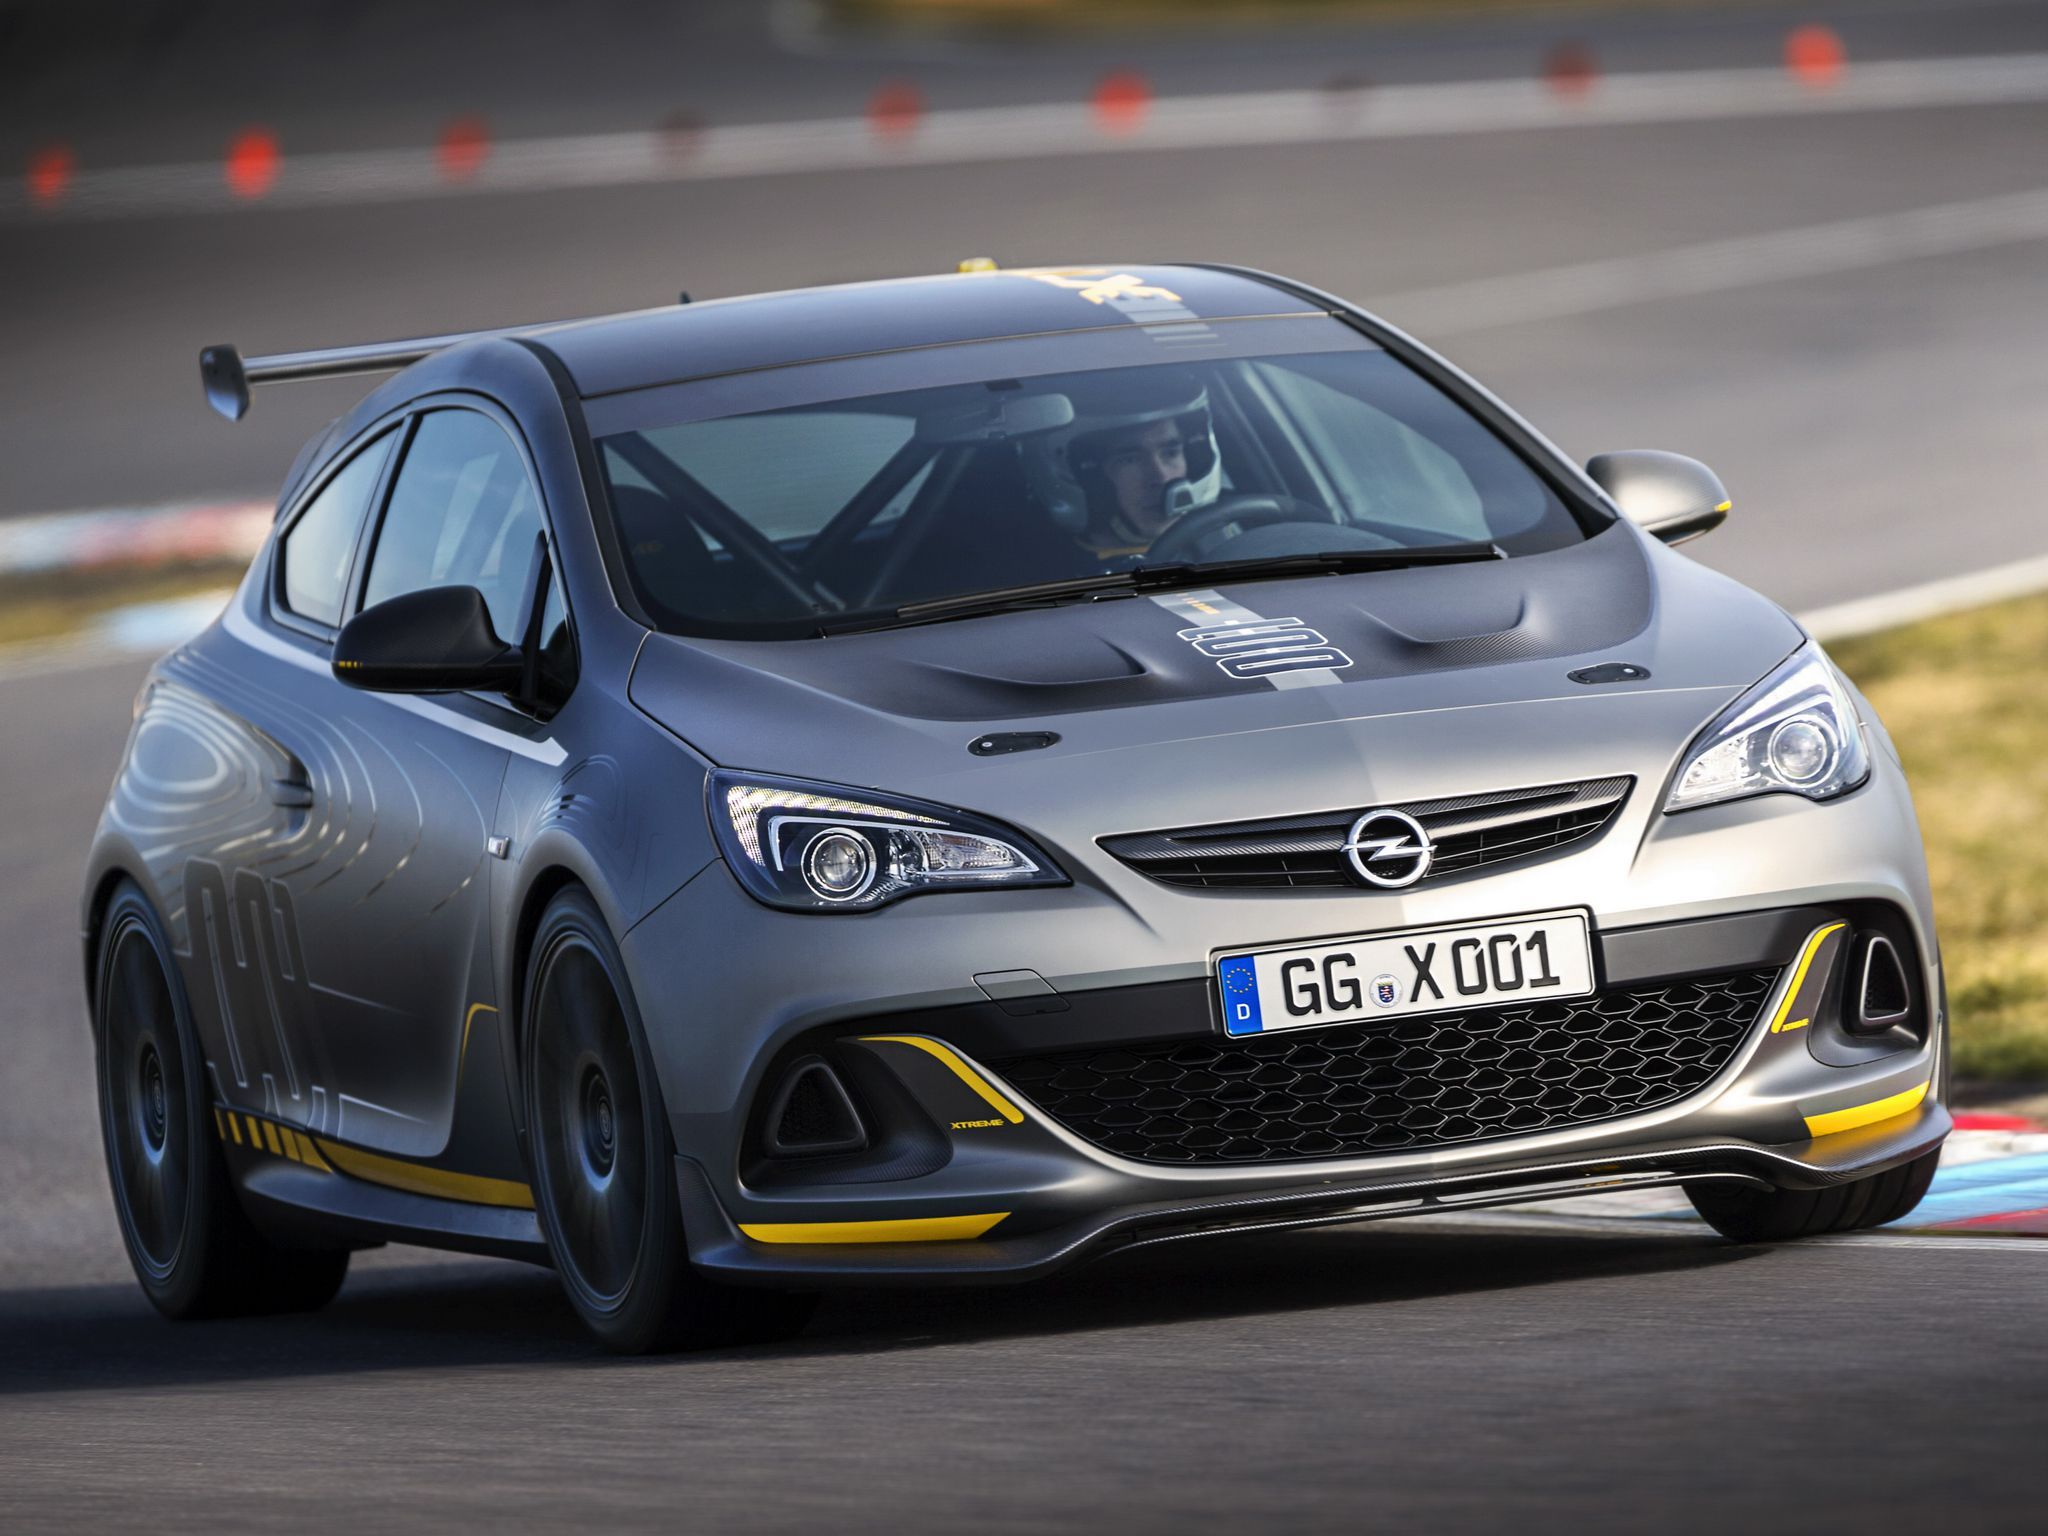 2014 Opel Astra Opc Extreme Concept Carwallpapers Pinterest